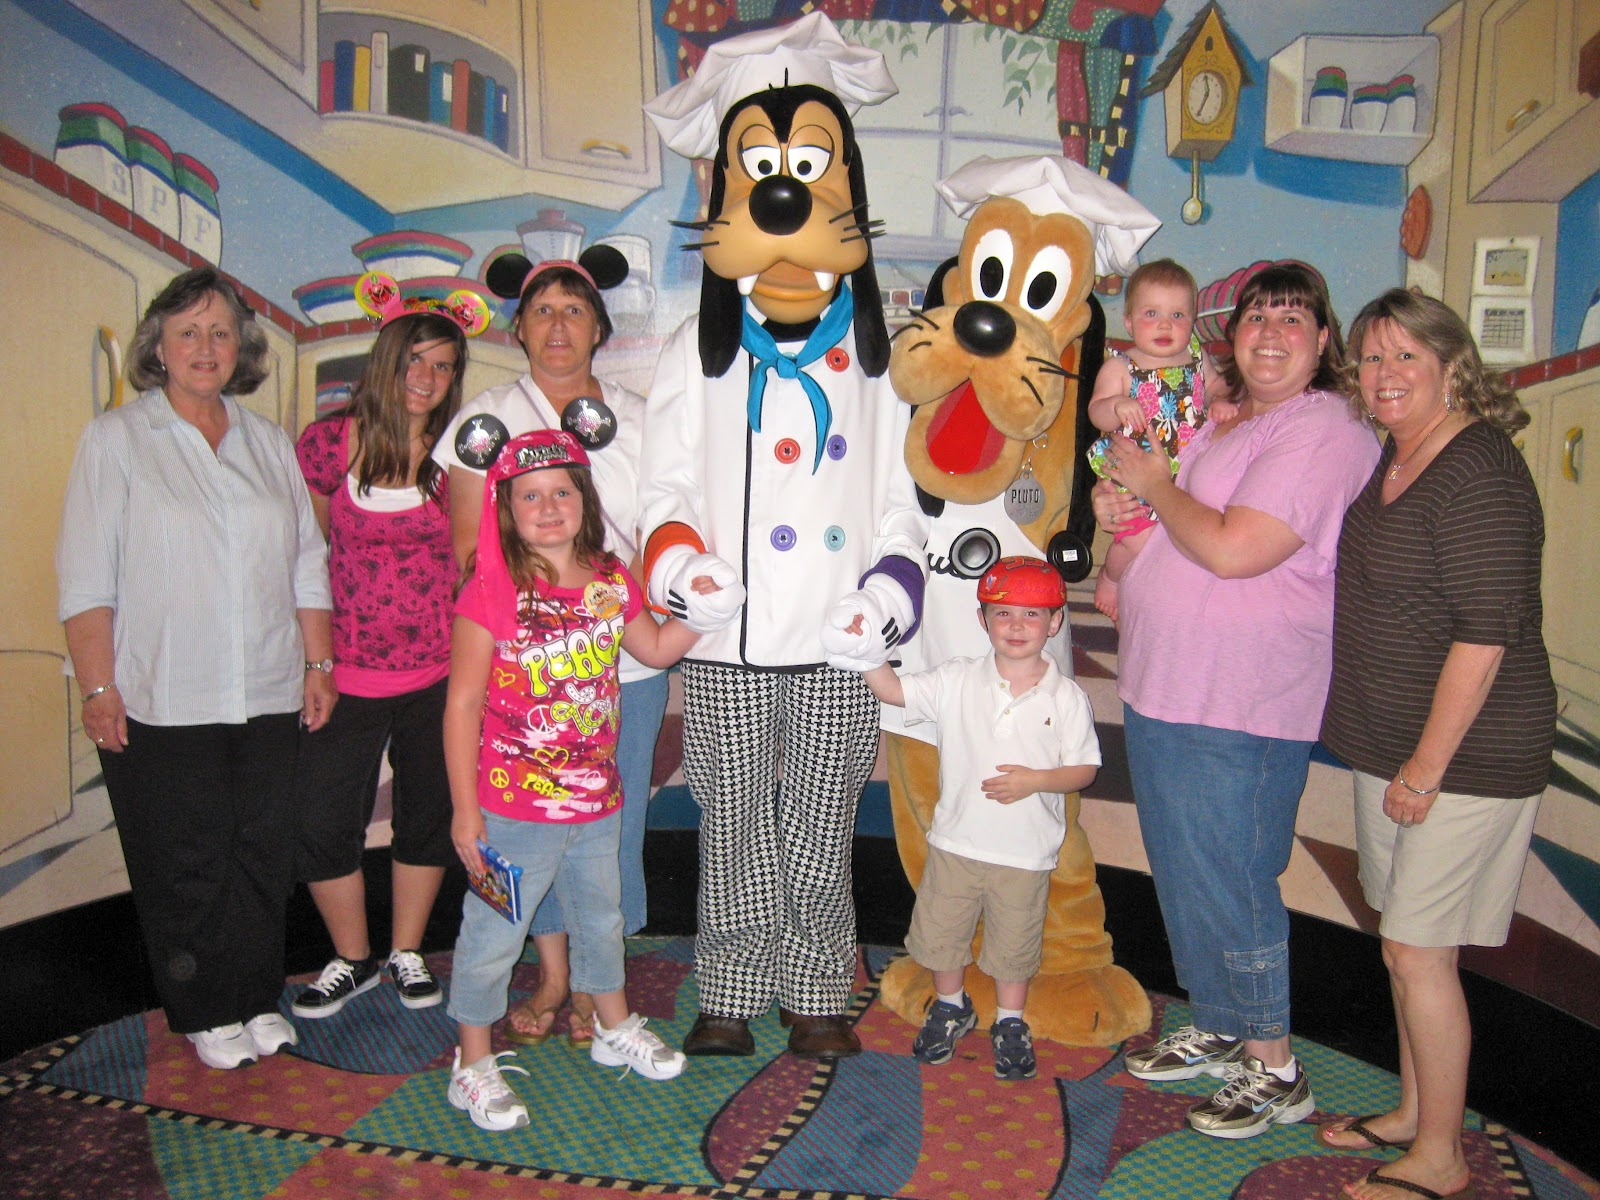 group photo with chef goofy and chef pluto - Goofys Kitchen